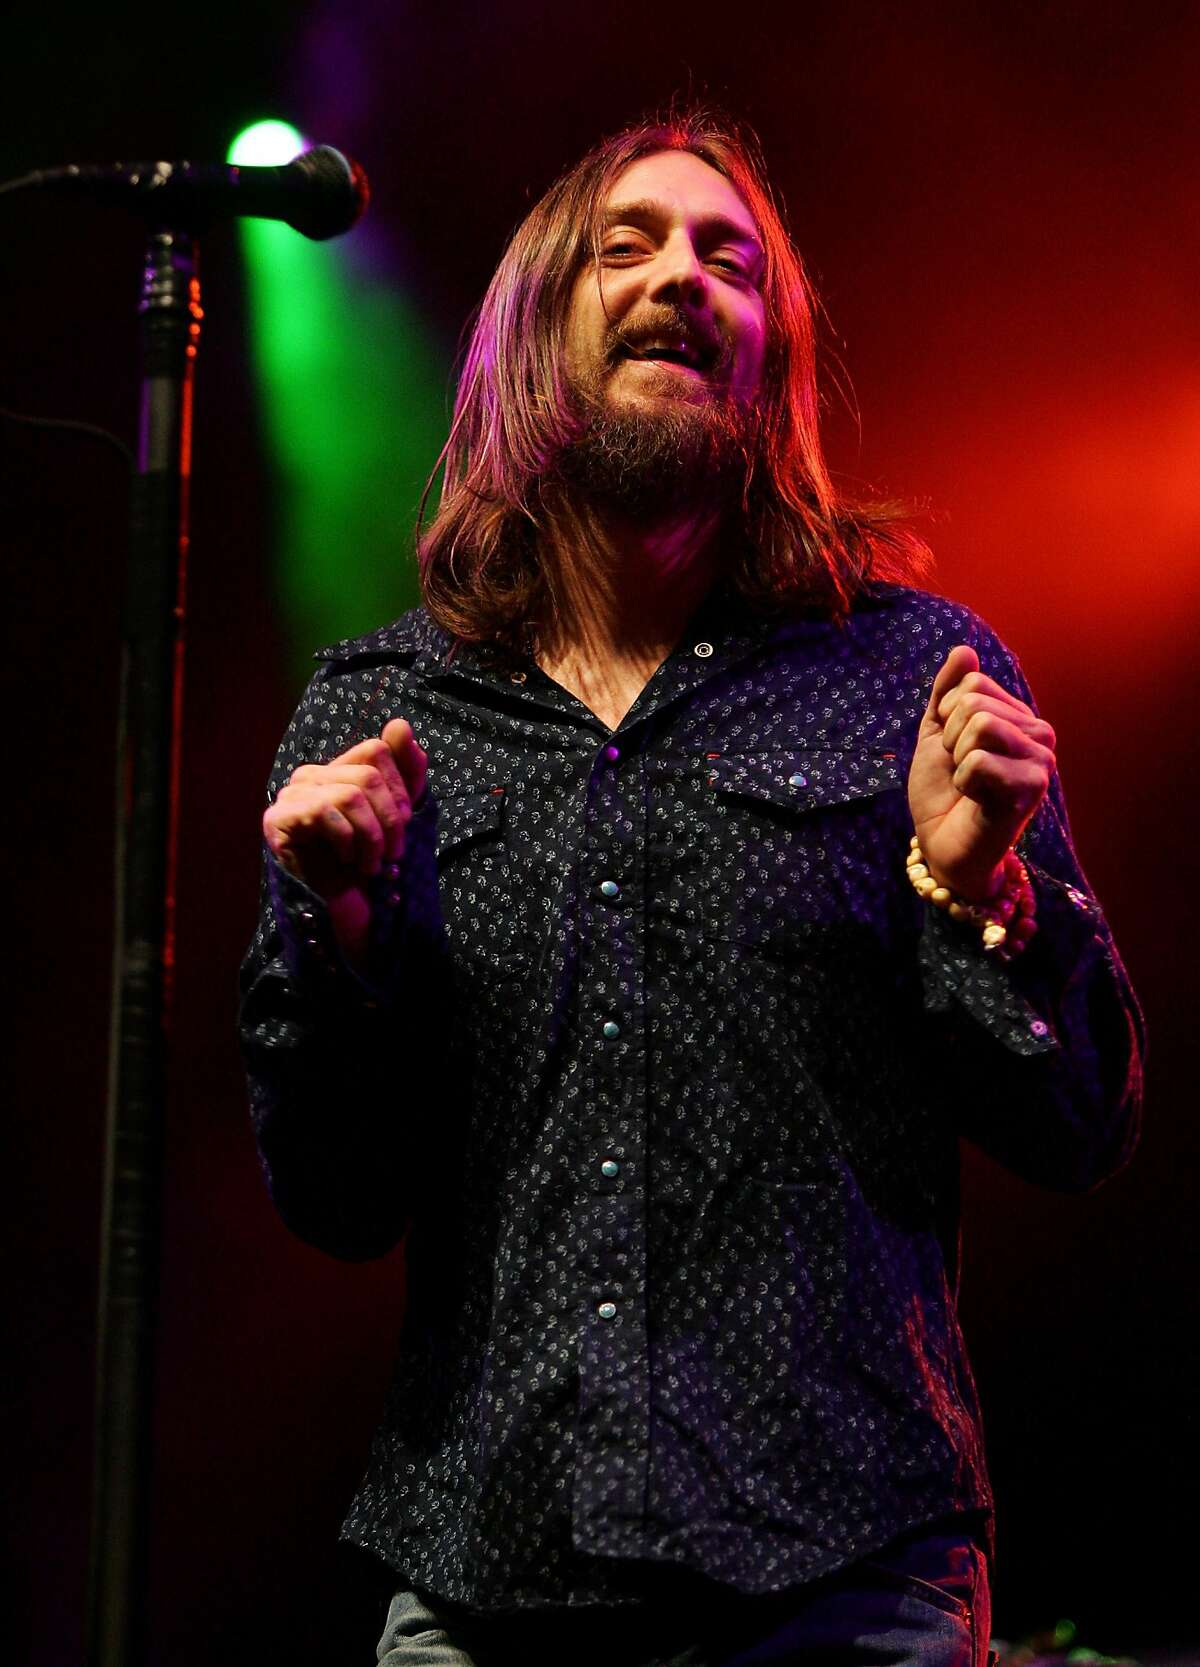 Singer Chris Robinson of The Black Crowes. The Black Crowes will bring their reunion tour to the Saratoga Performing Arts Center at 8 p.m. Saturday, July 25, Live Nation has announced.